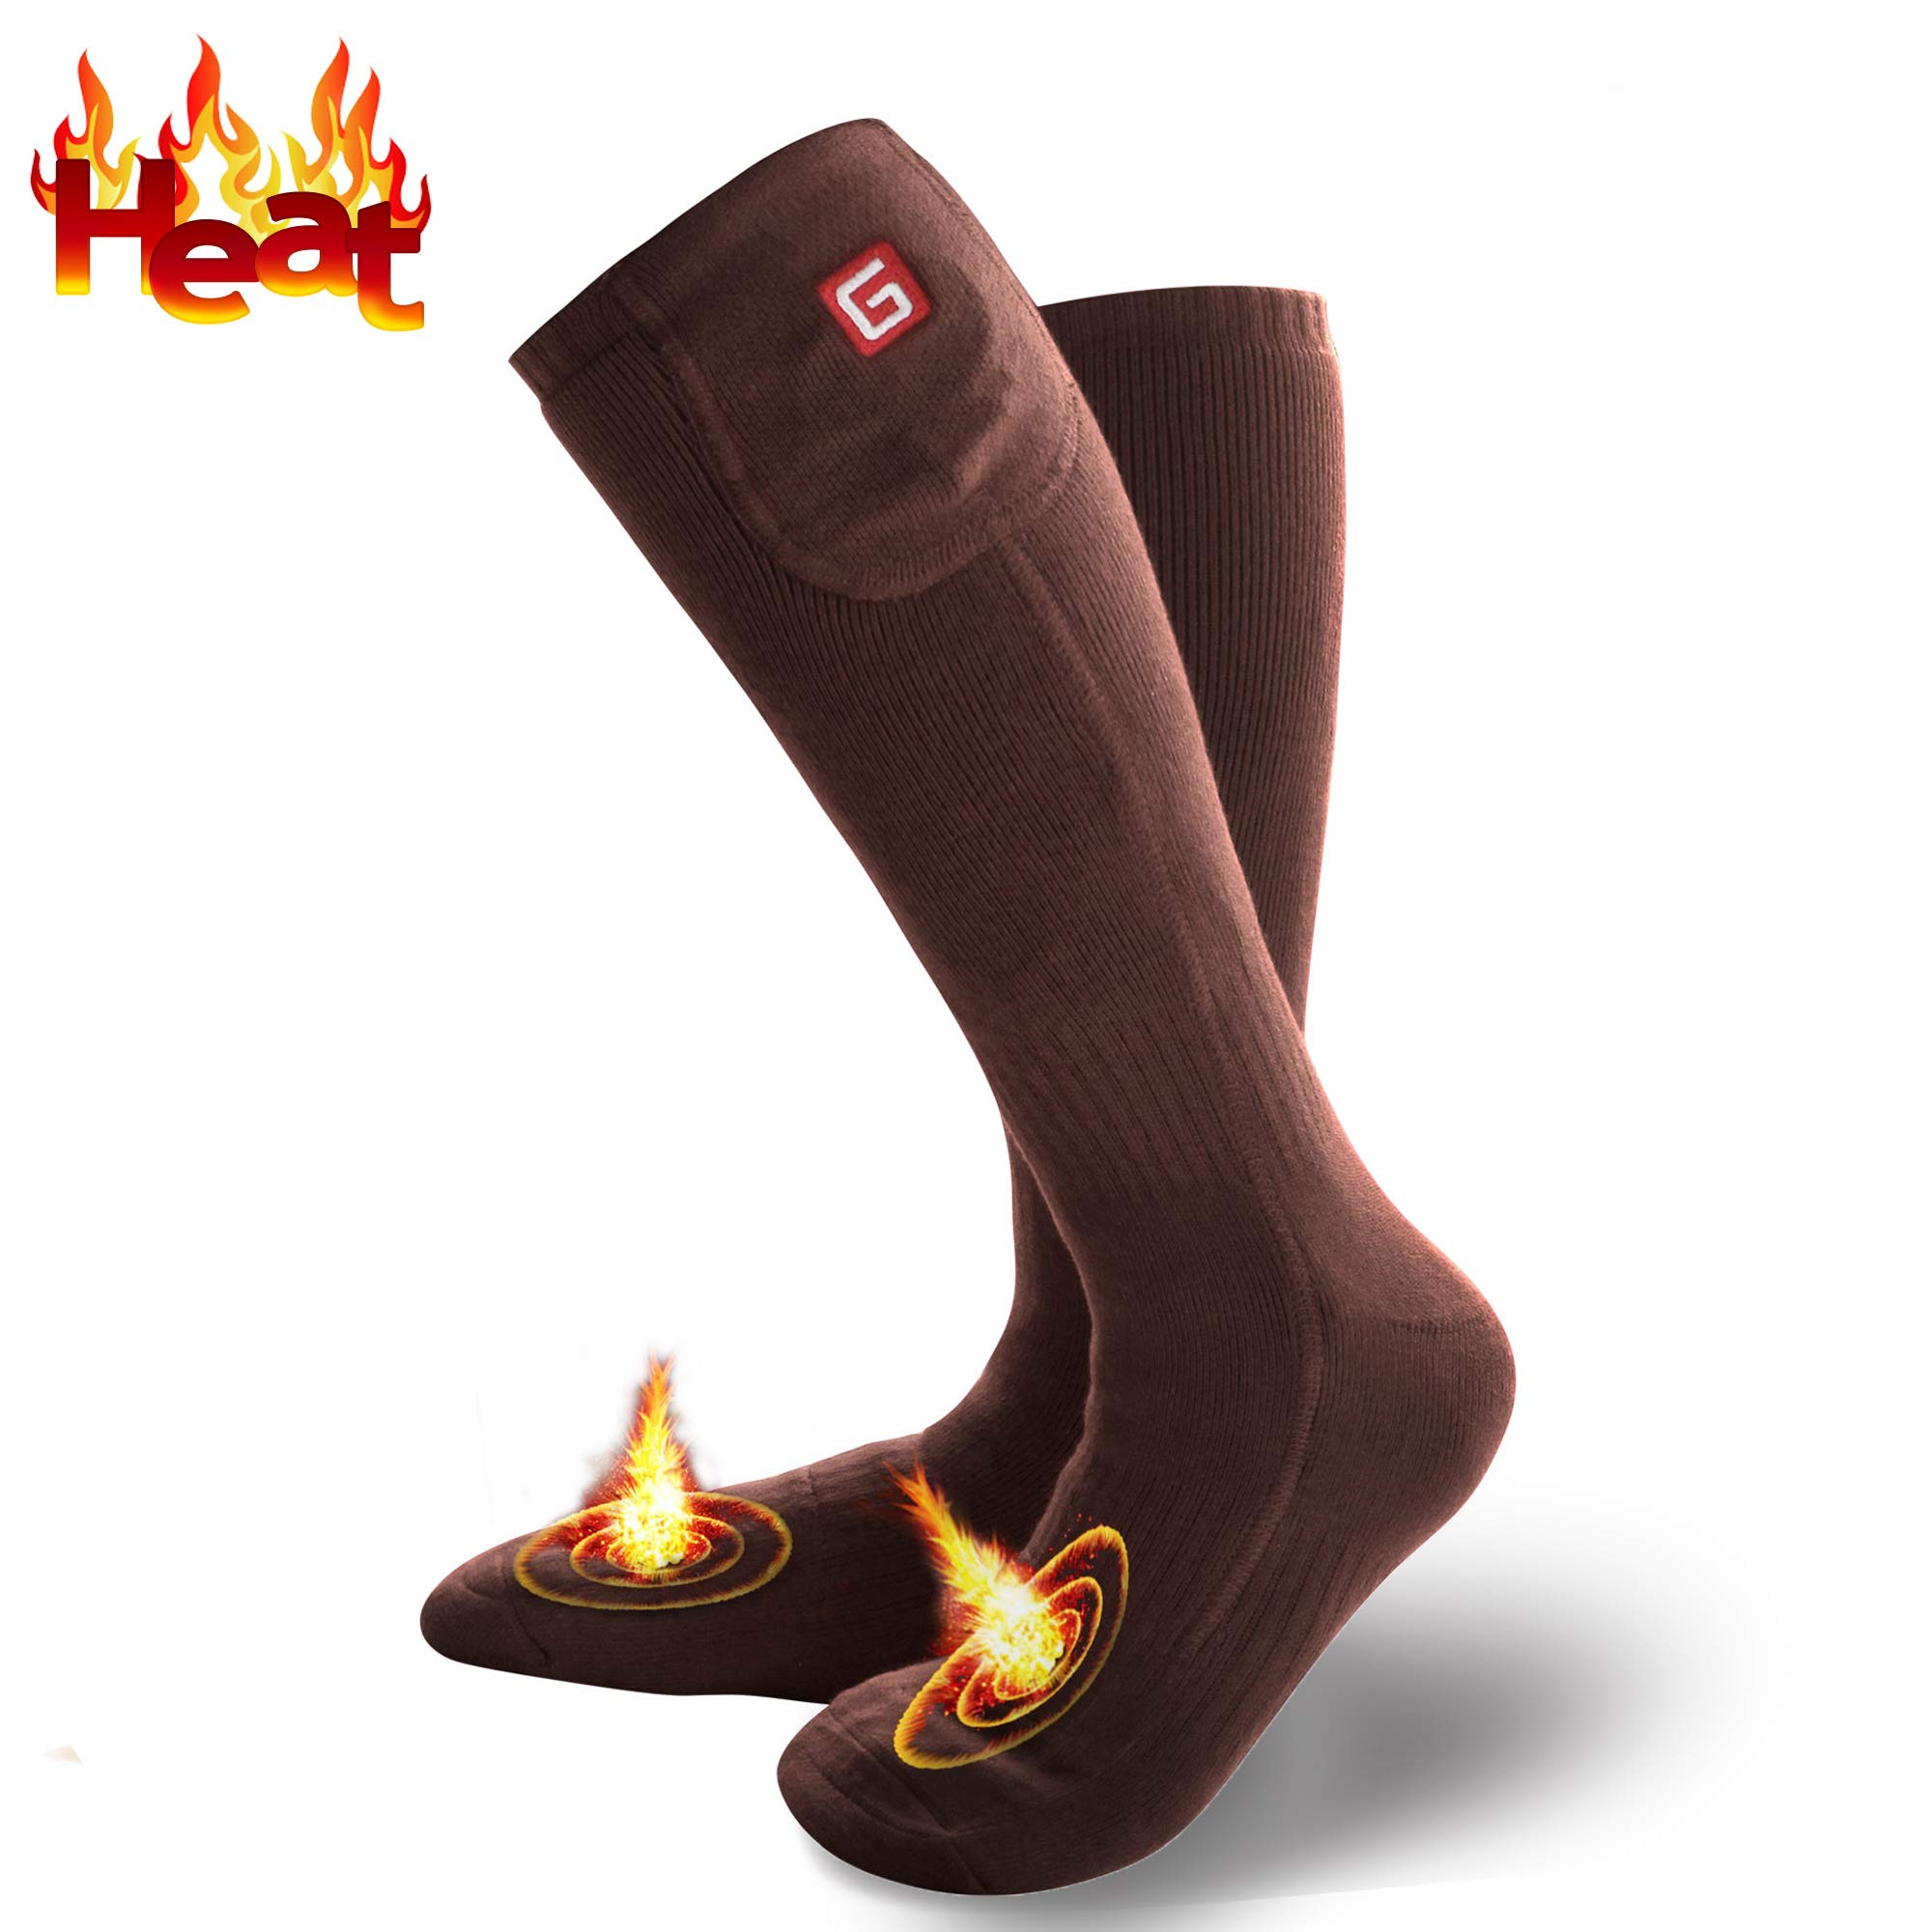 Electric Heated Socks for Men Thermal Socks Rechargeable Battery Foot Warmers Winter Ideal Presents for Men Women Perfect for Indoor Outdoor Sport Fishing/Hiking/Sleeping (Brown-M) by MMlove